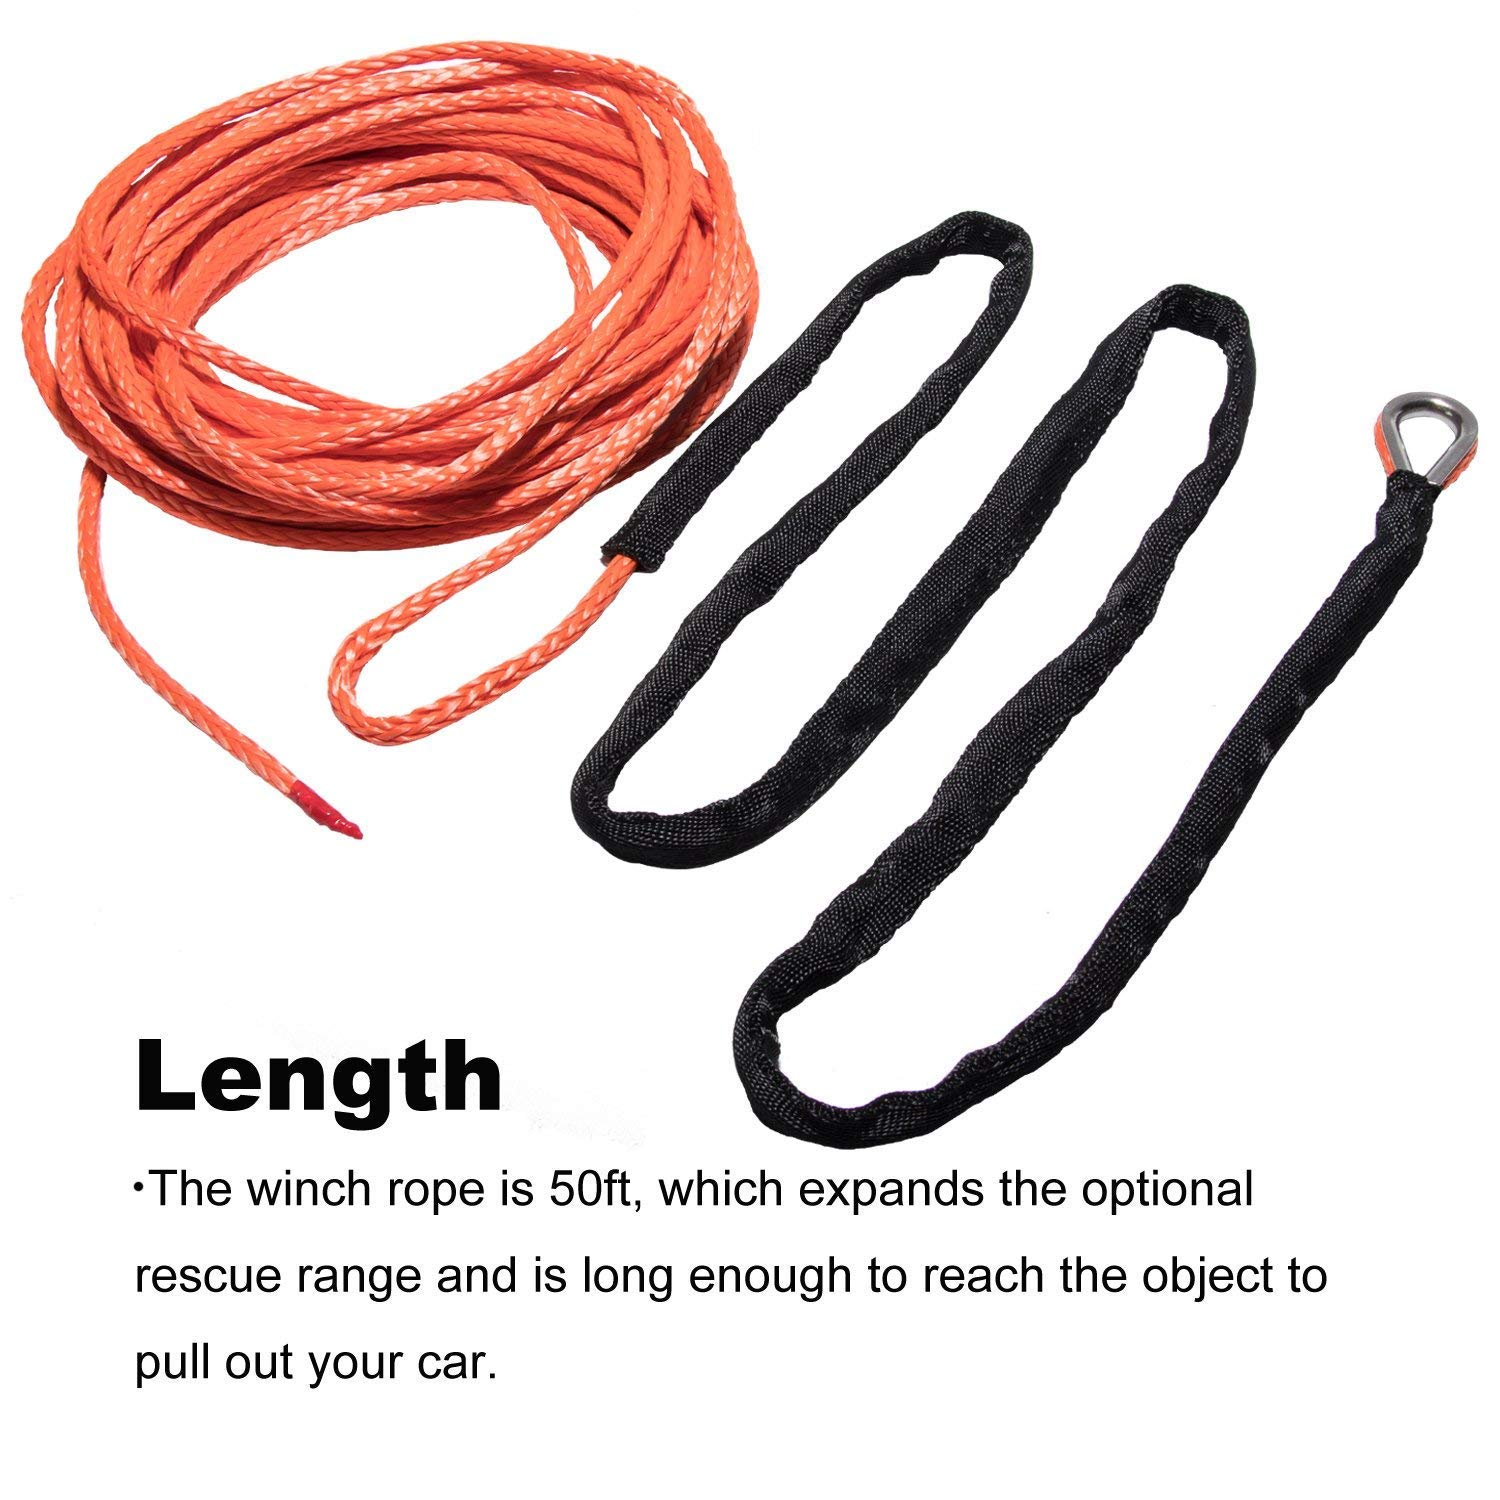 Amazon.com: Yoursme Nylon Synthetic Winch Cable Rope with Sheath for ...